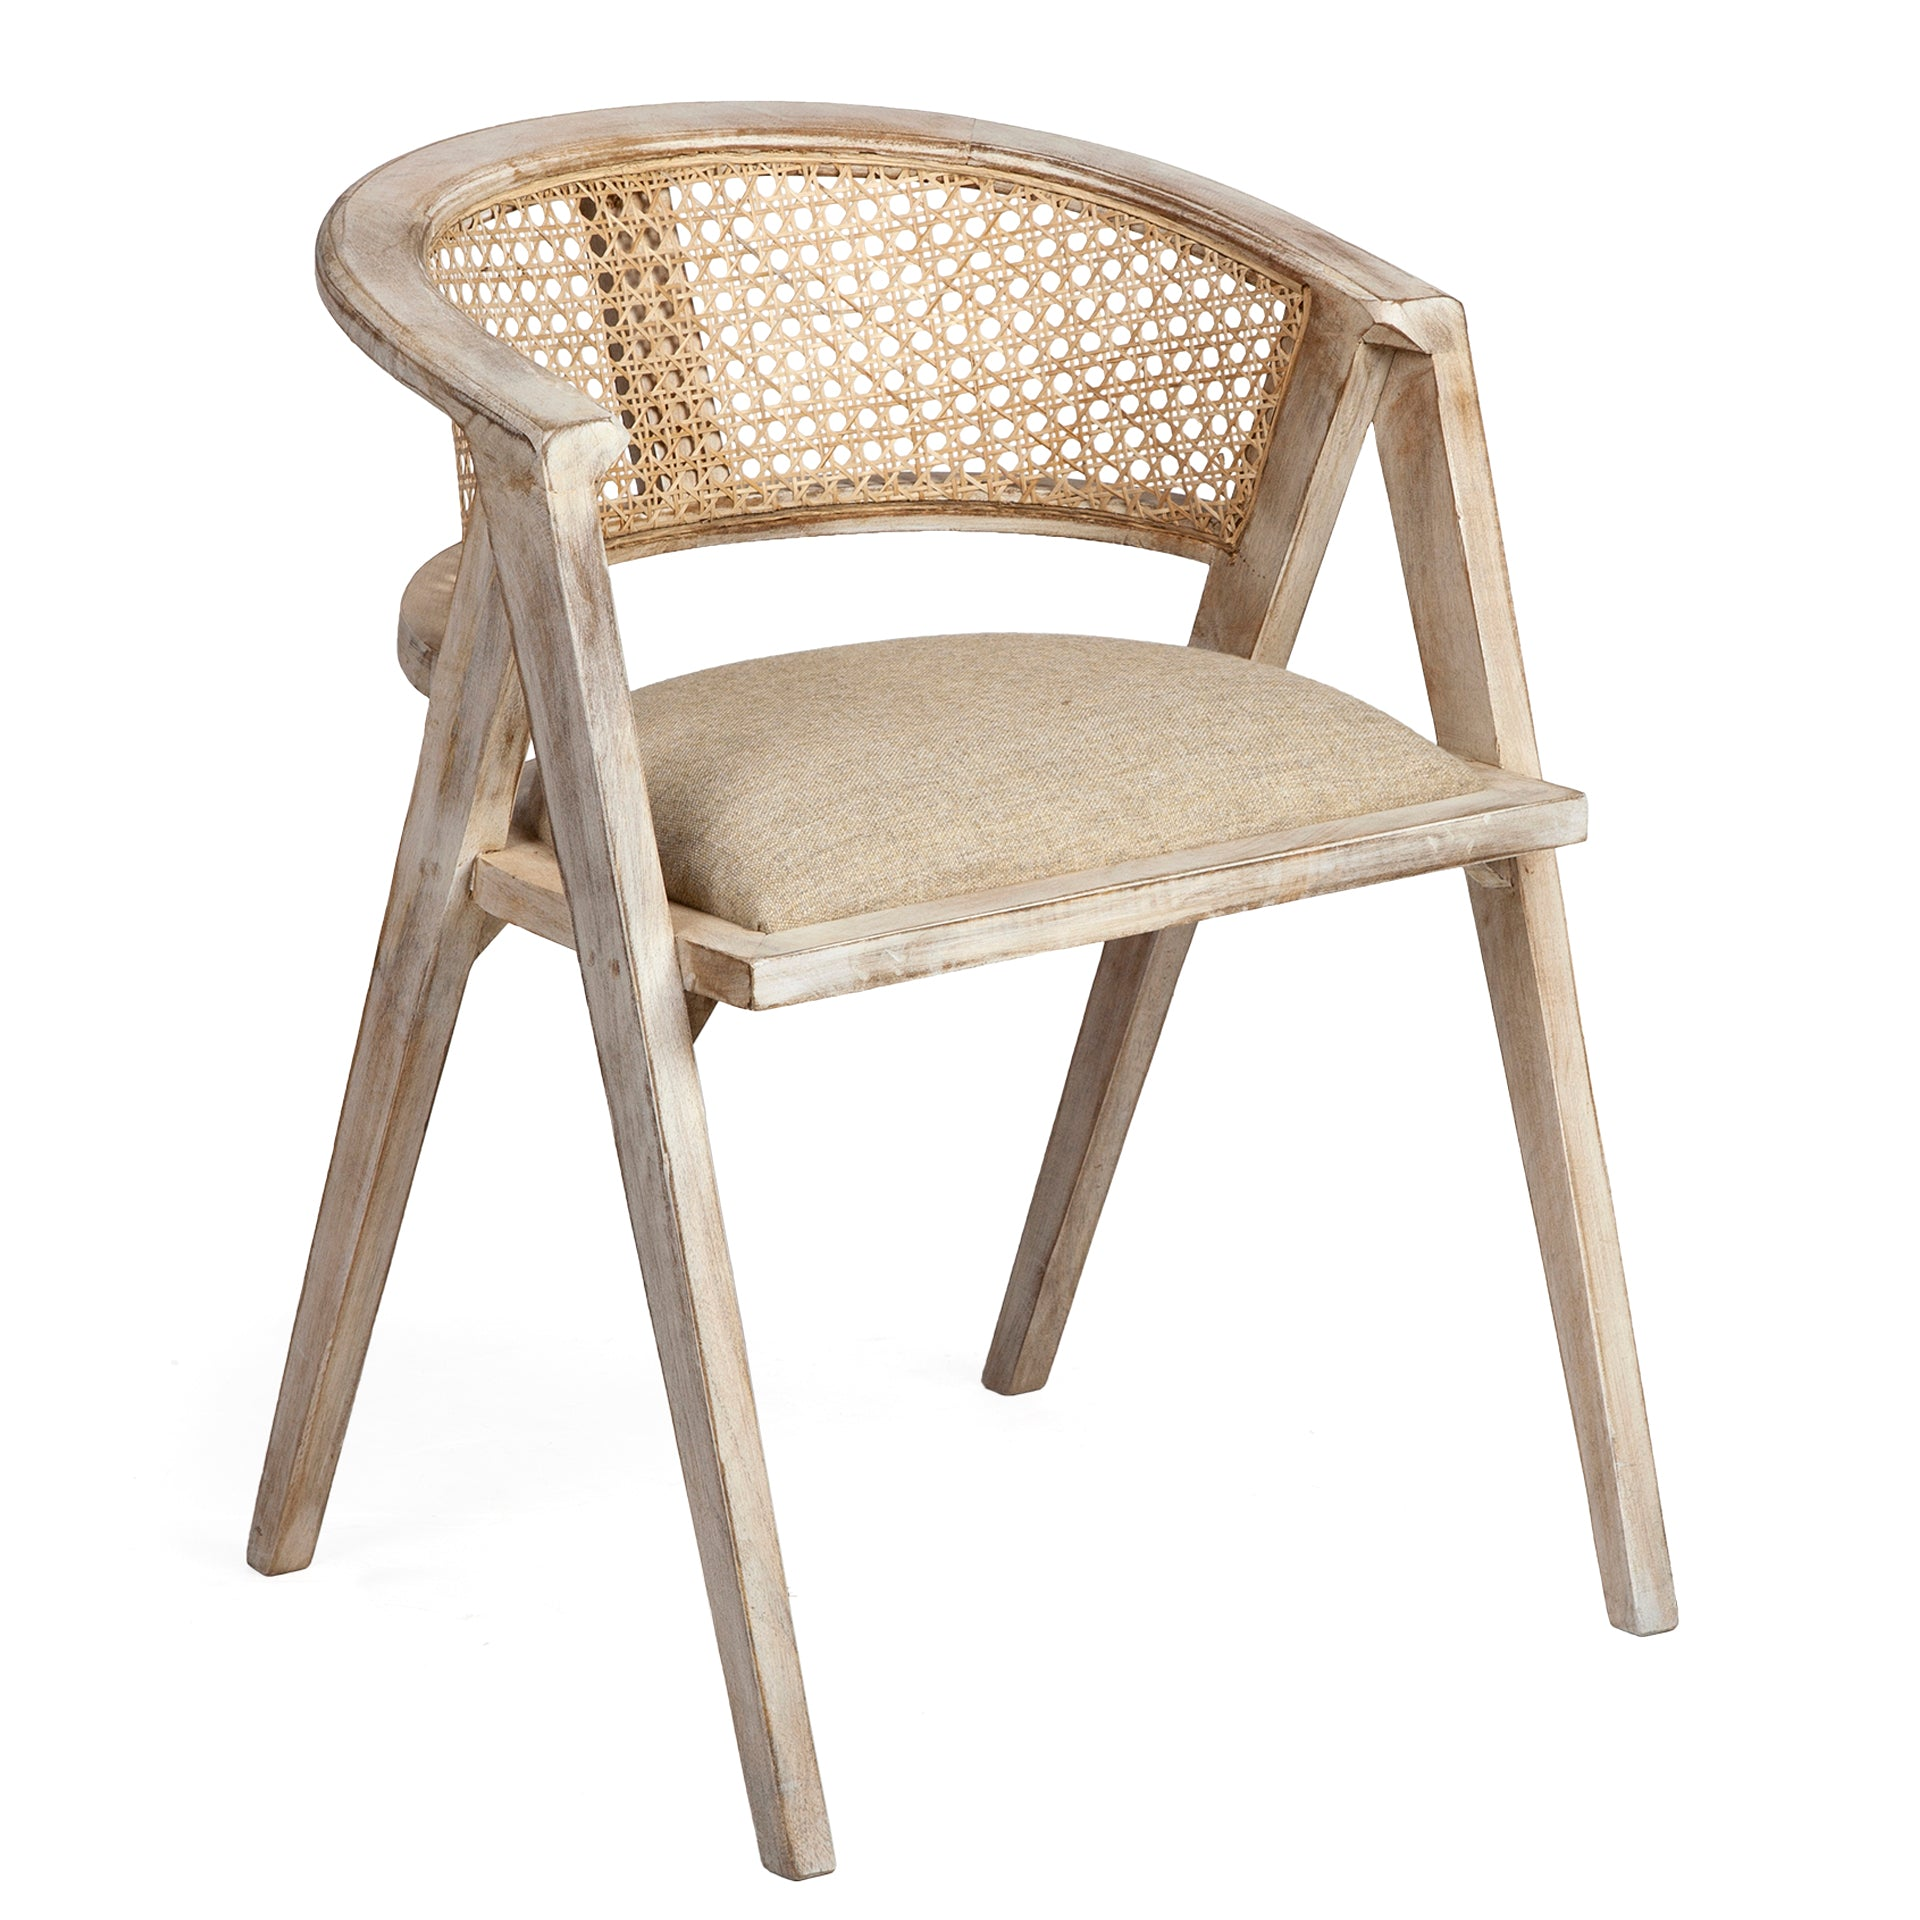 Surprising Tanner Accent Chair Pabps2019 Chair Design Images Pabps2019Com